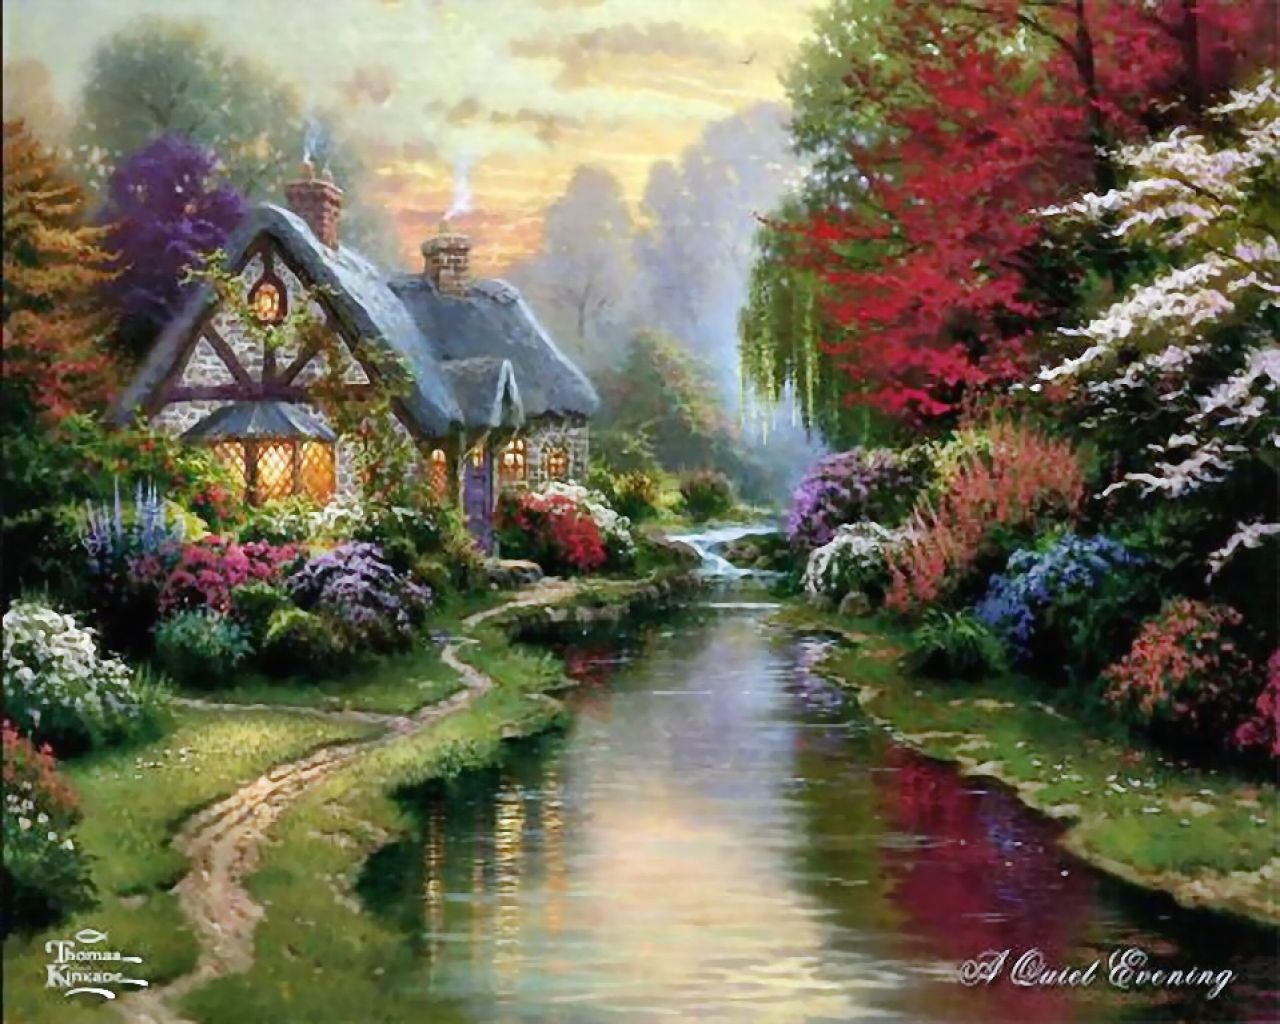 Thomas Kinkade old nature, the house and the river